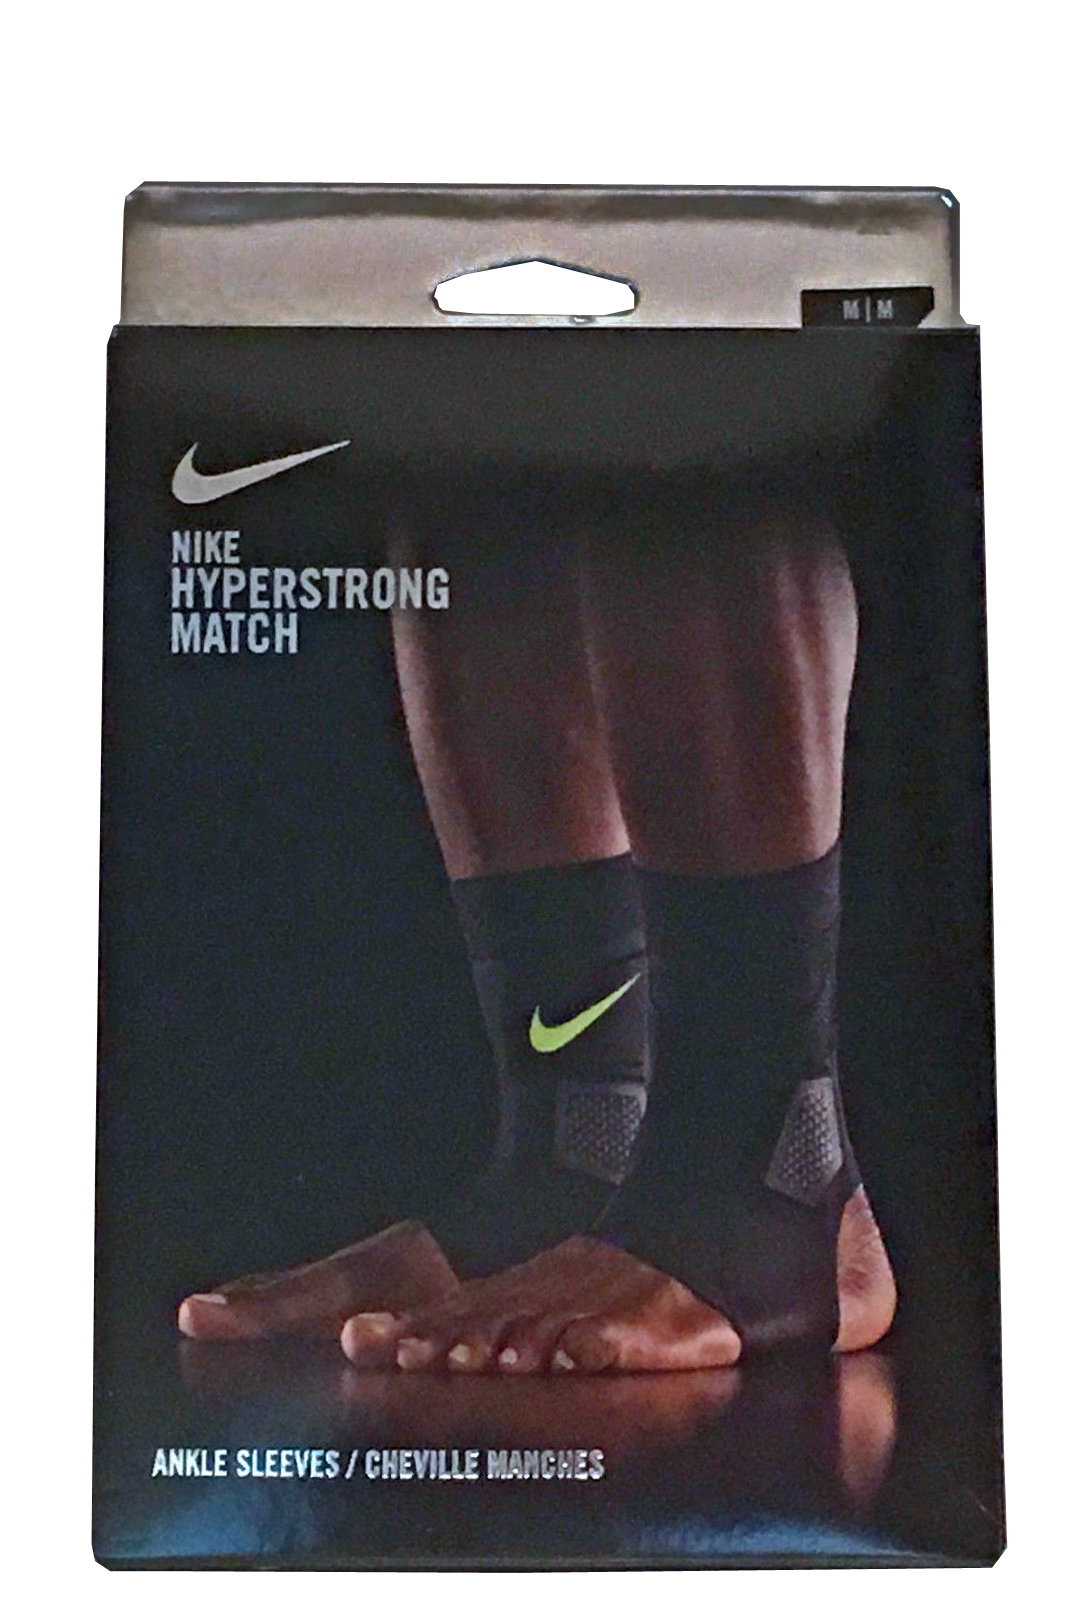 Nike Unisex Hyperstrong Match Black/Volt Swoosh Ankle Sleeves - X-Small 14649